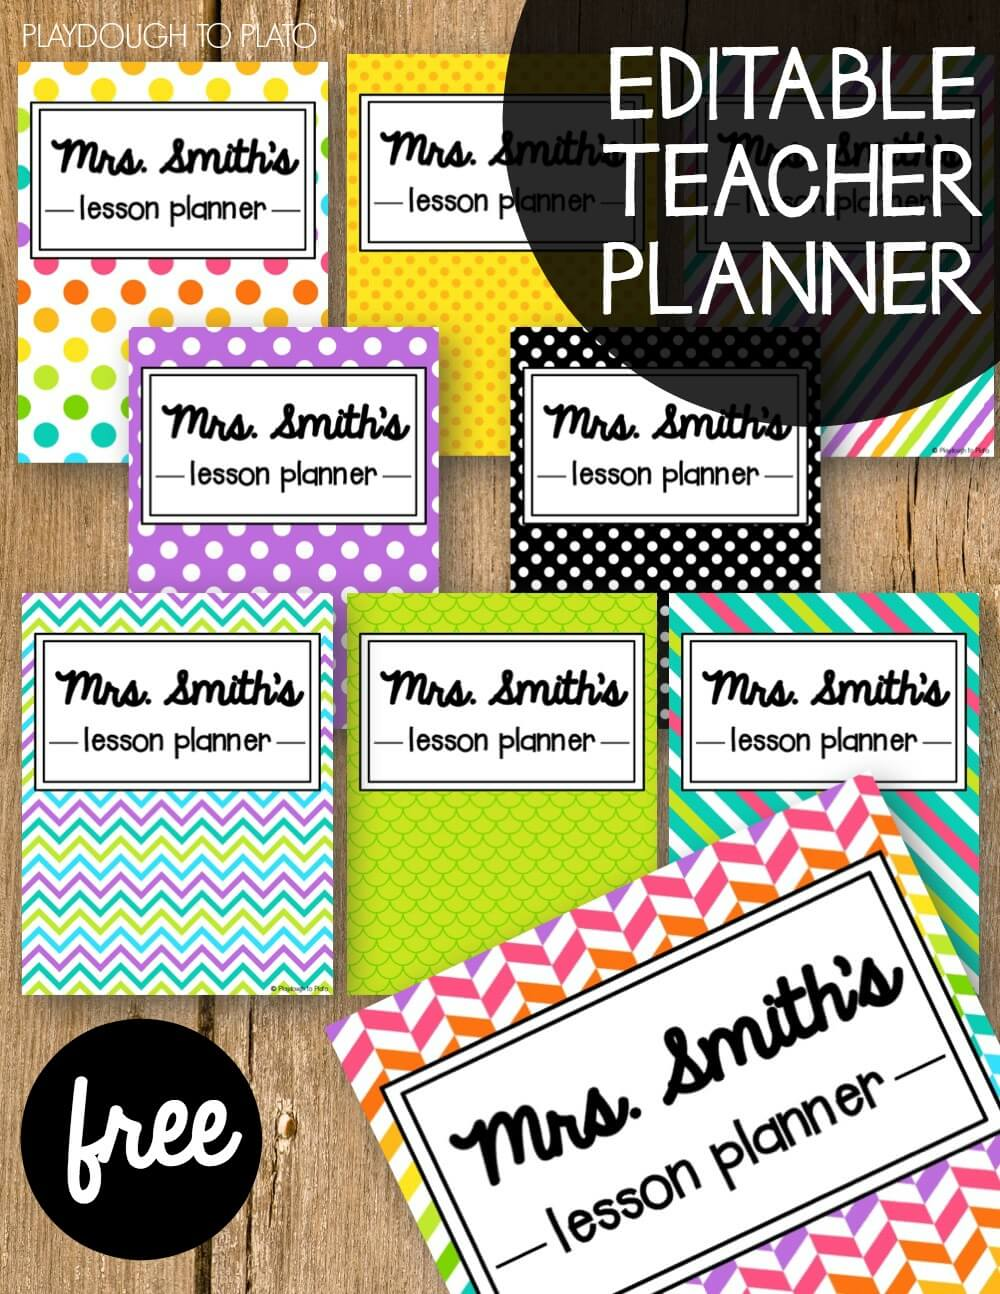 photograph about Free Printable Teacher Planner known as Free of charge Instructor Planner - Playdough Towards Plato